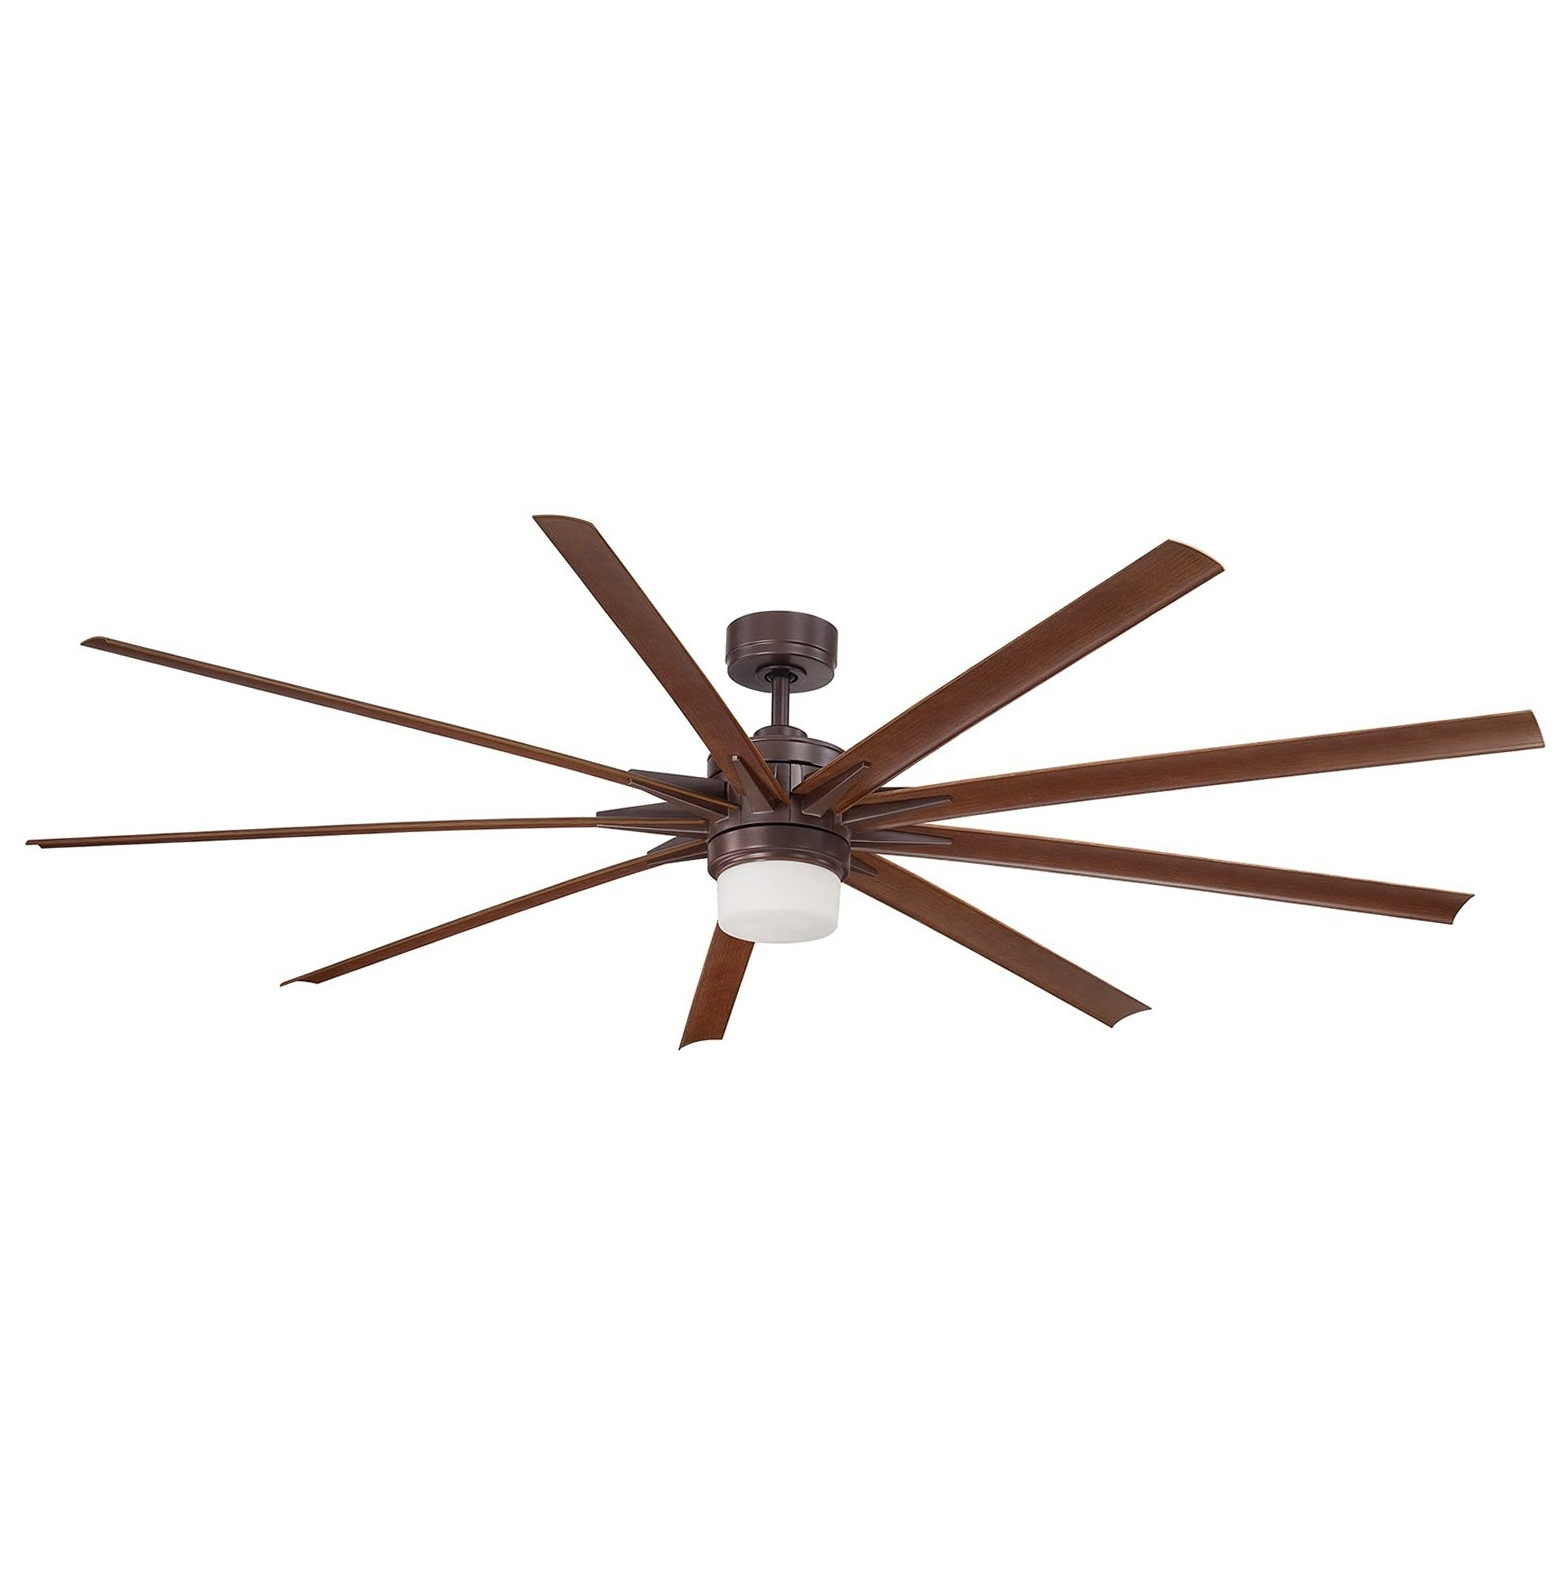 Lowes Ceiling Fan (View 18 of 20)